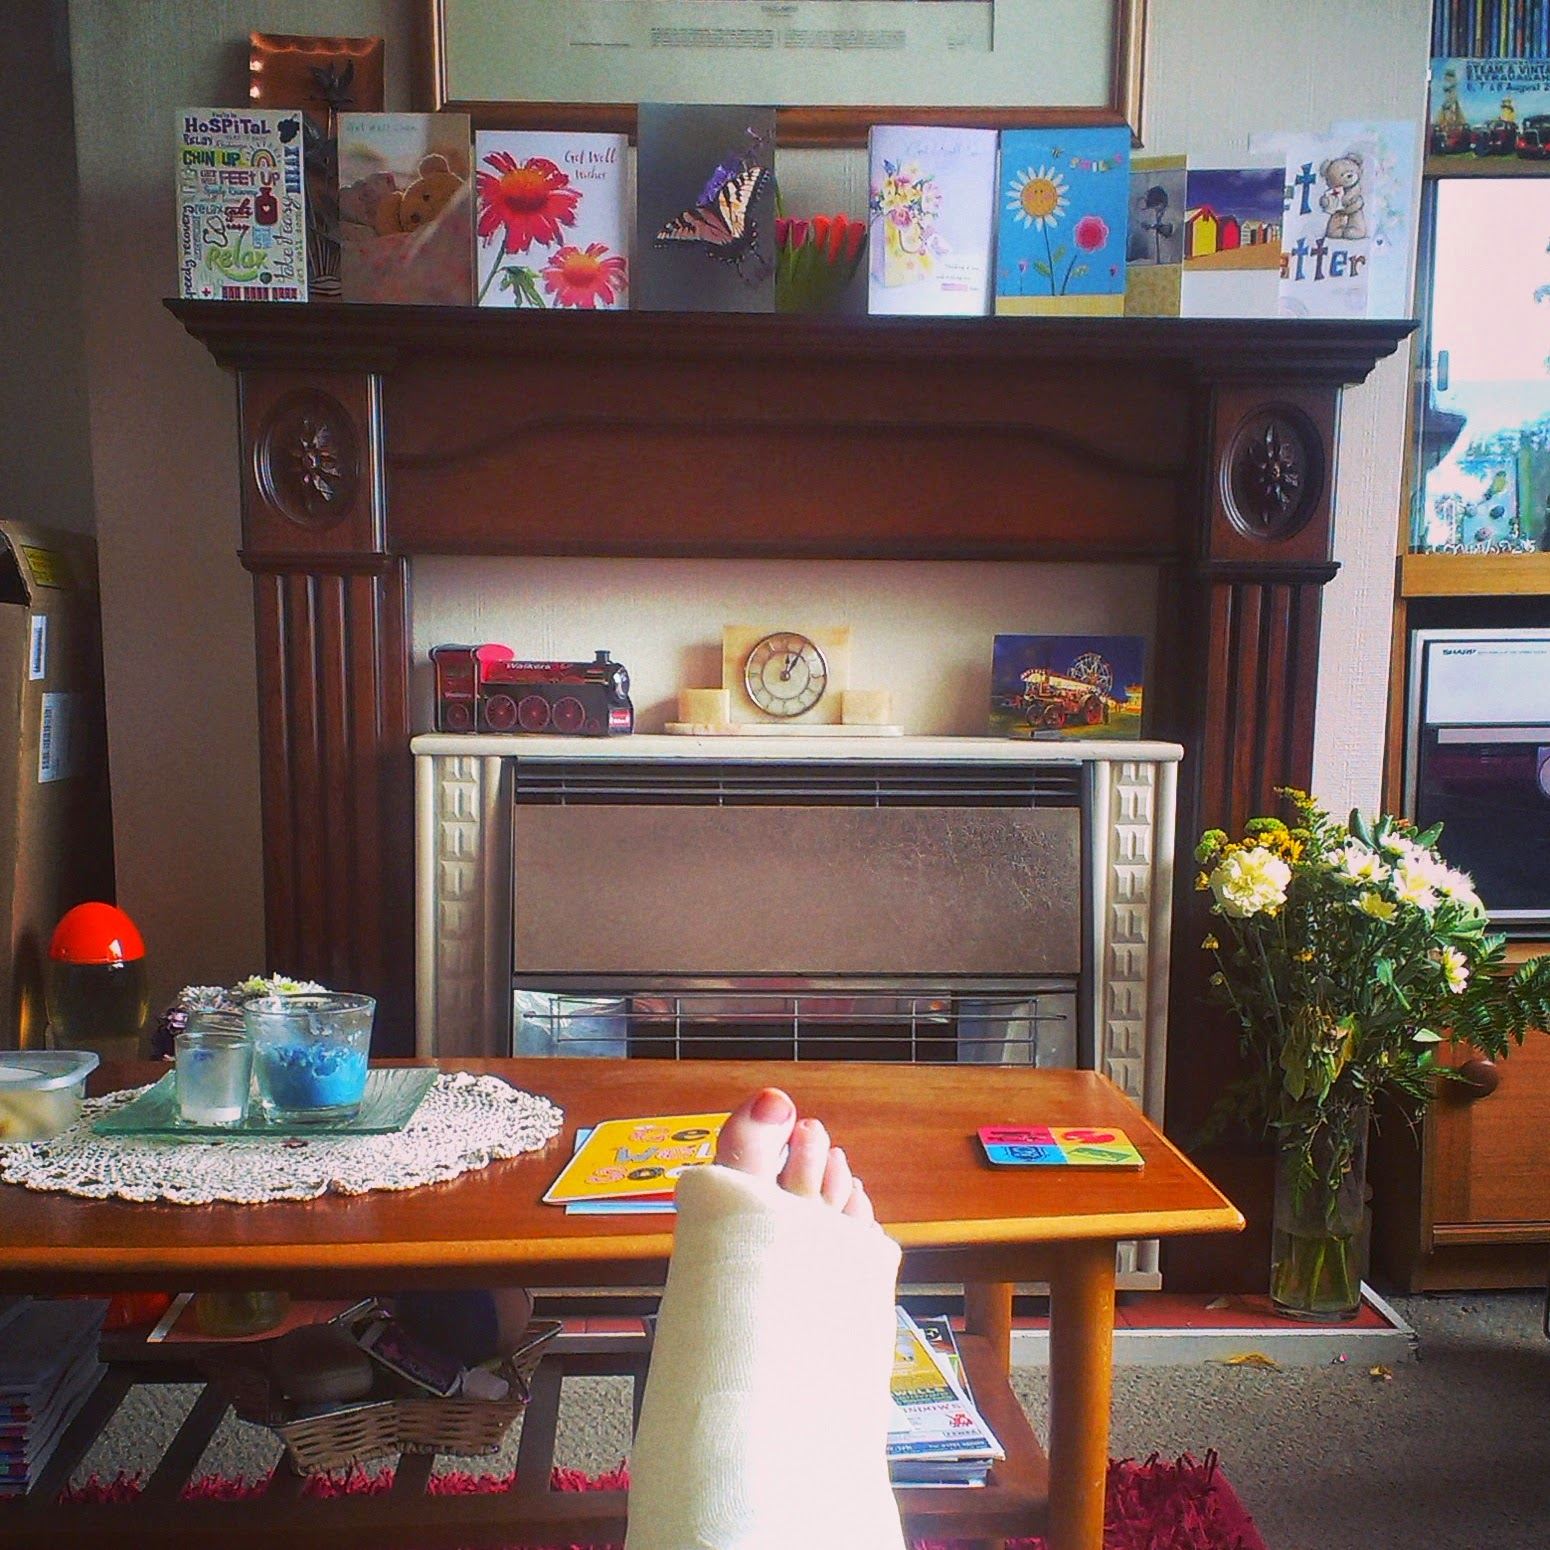 The view from the sofa